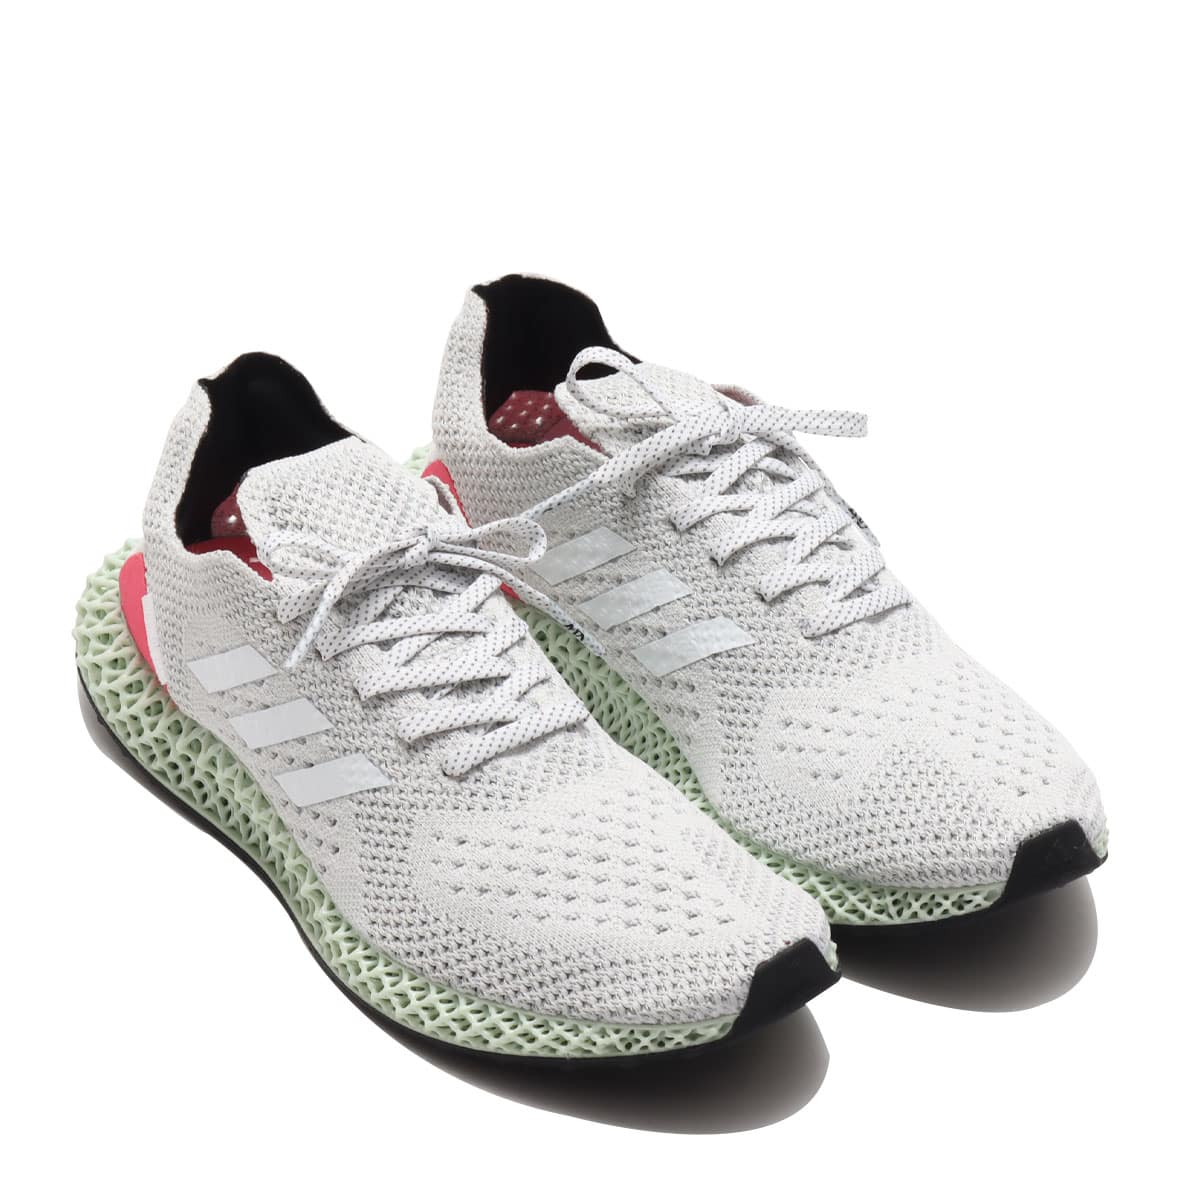 adidas 4D RUNNER AEC CRYSTAL WHITE/FOOTWEAR WHITE/SUPER PINK 20FW-S_photo_large